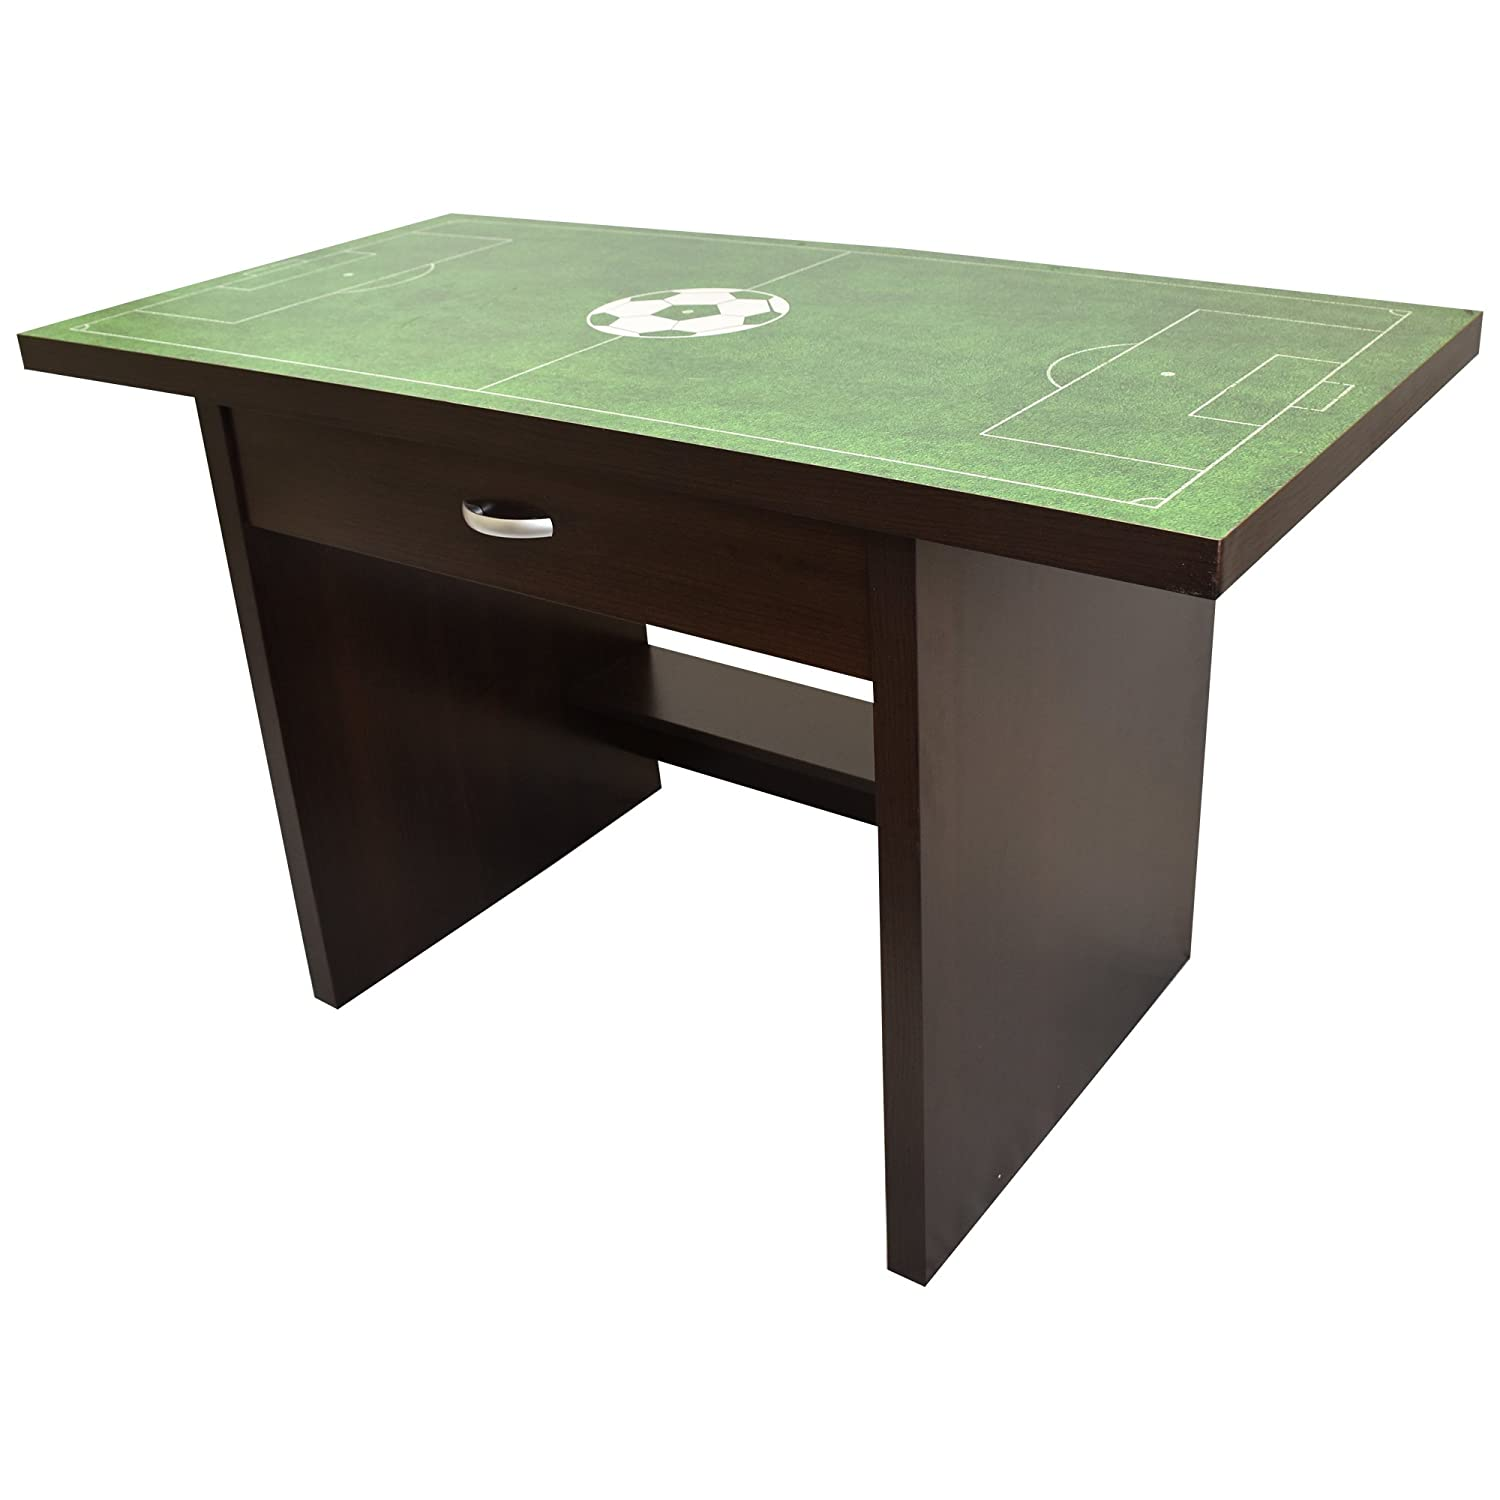 Little Partners Kids Basketball Sports Fan Desk, Wooden Construction with Drawer, Glossy Finish and Easy to Clean, 35